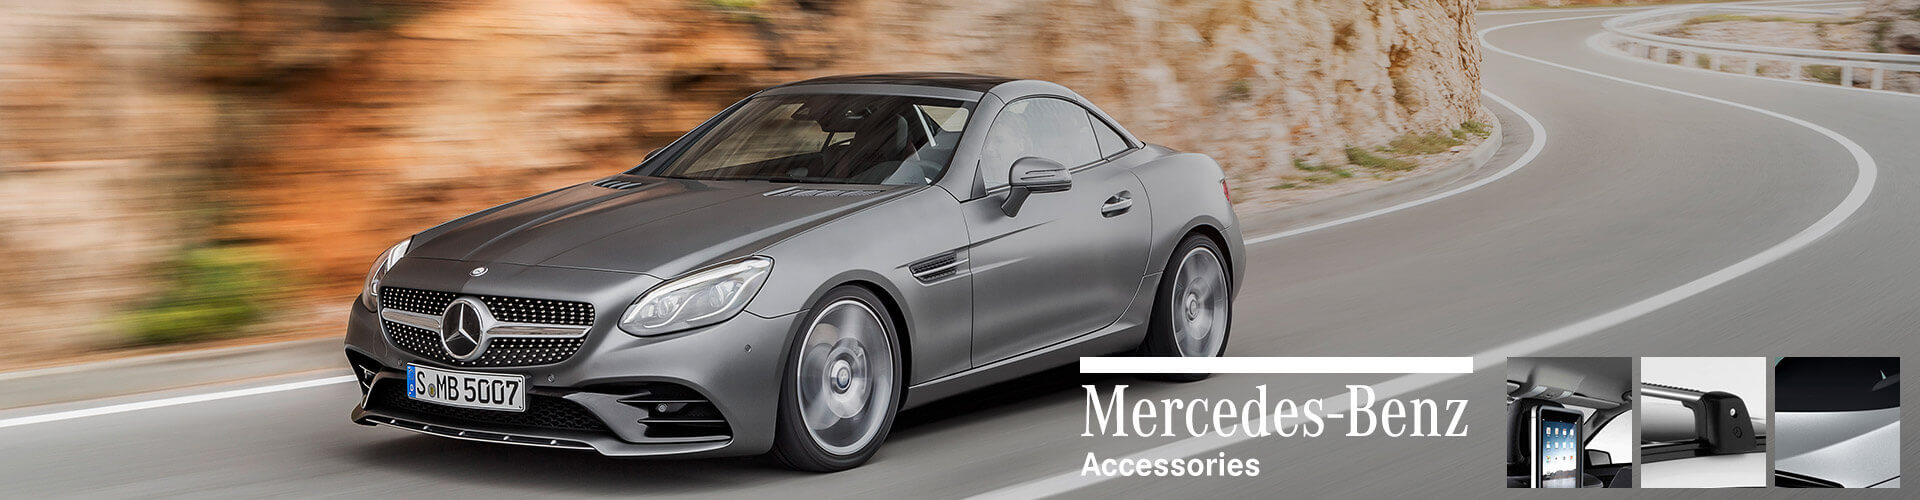 Mercedes-Benz Accessories